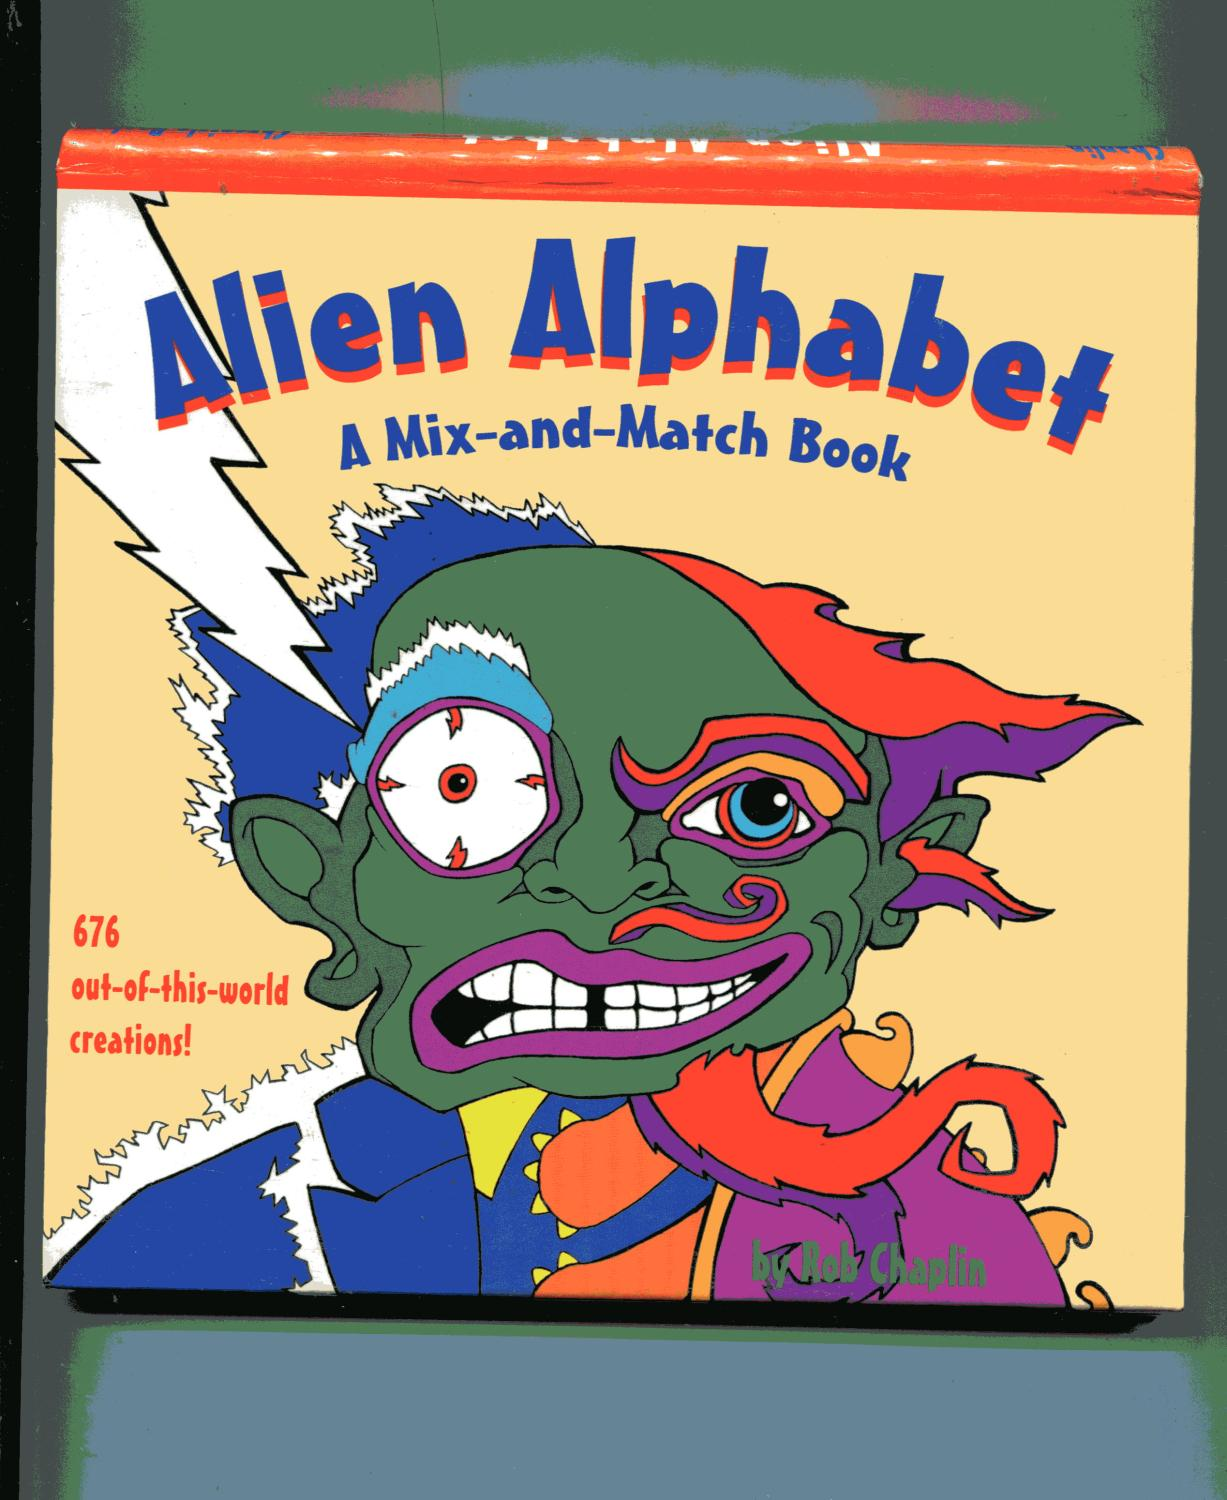 Mix And Match Alien Alphabet A Mix And Match Book